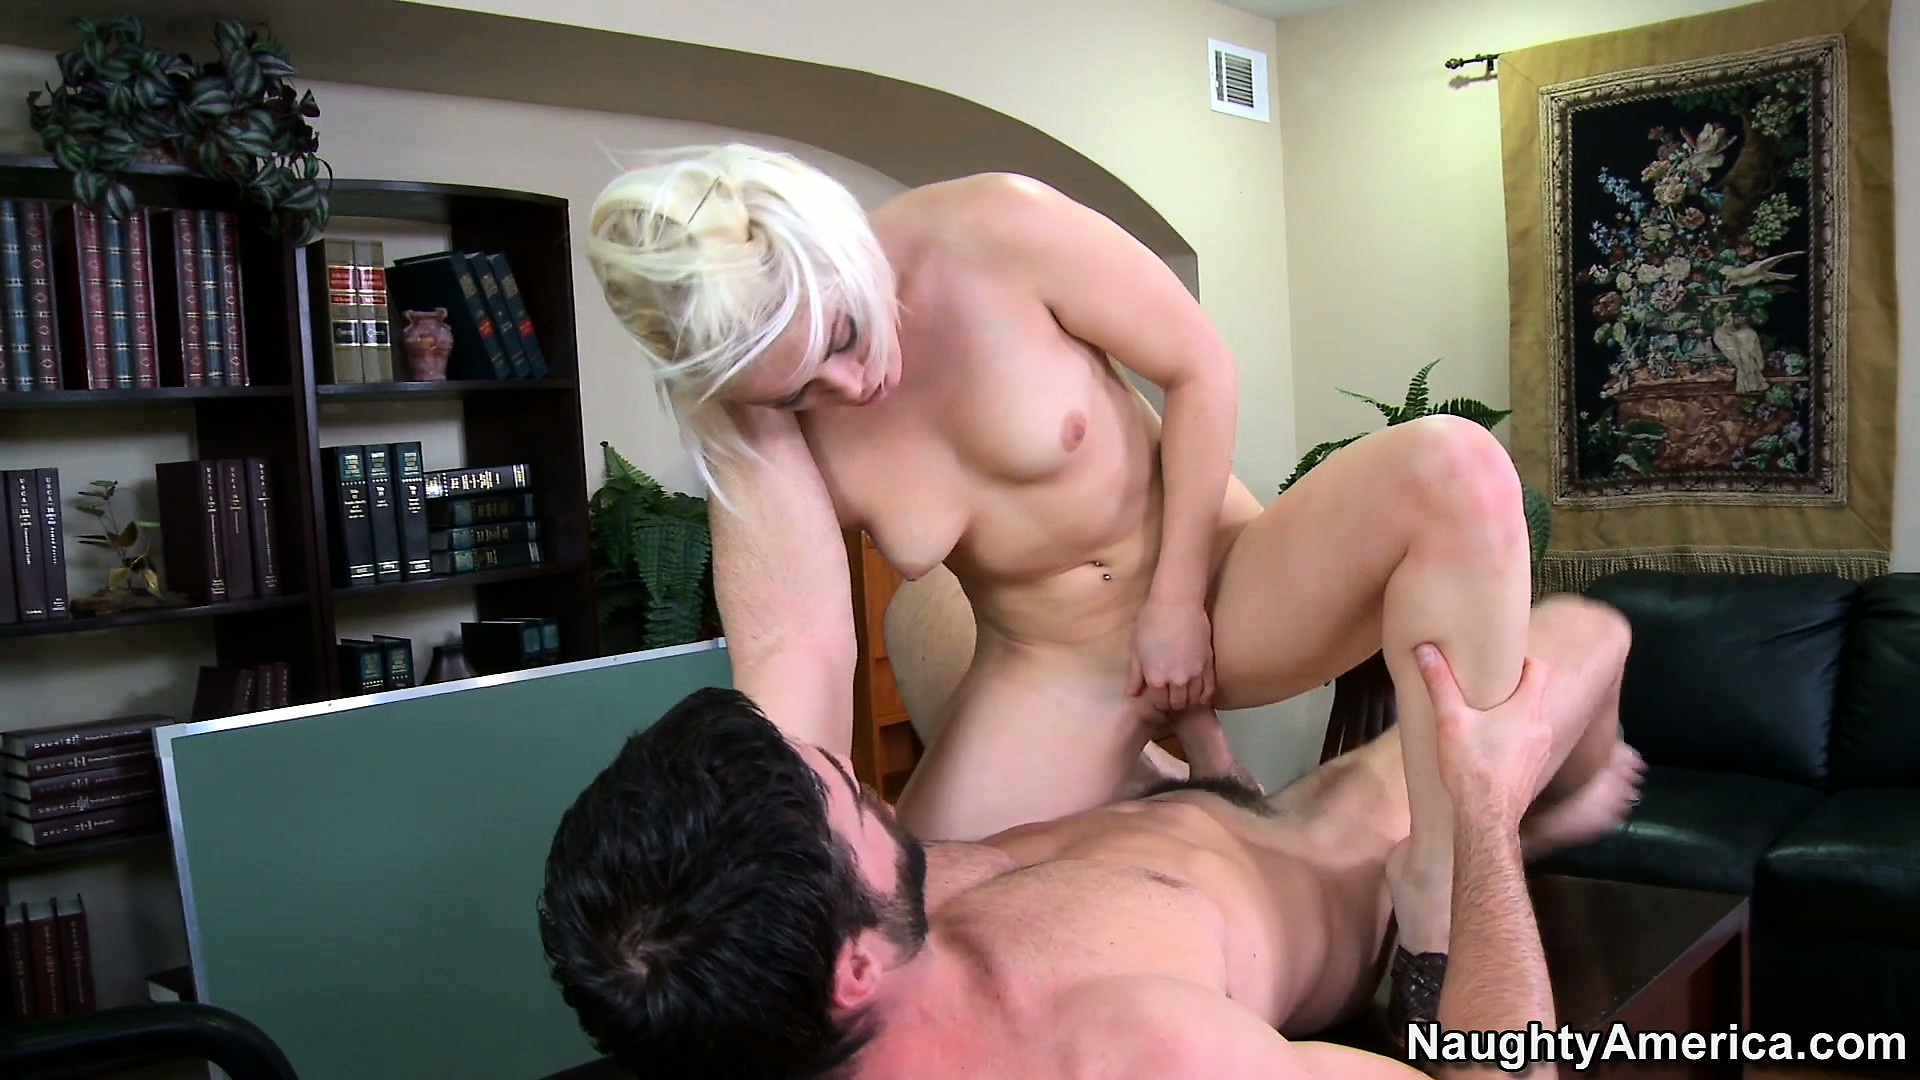 Porno Video of Hottie Ash Hollywood Has A Hankering For His Hunk Of Hot Meat In Her Pie Hole